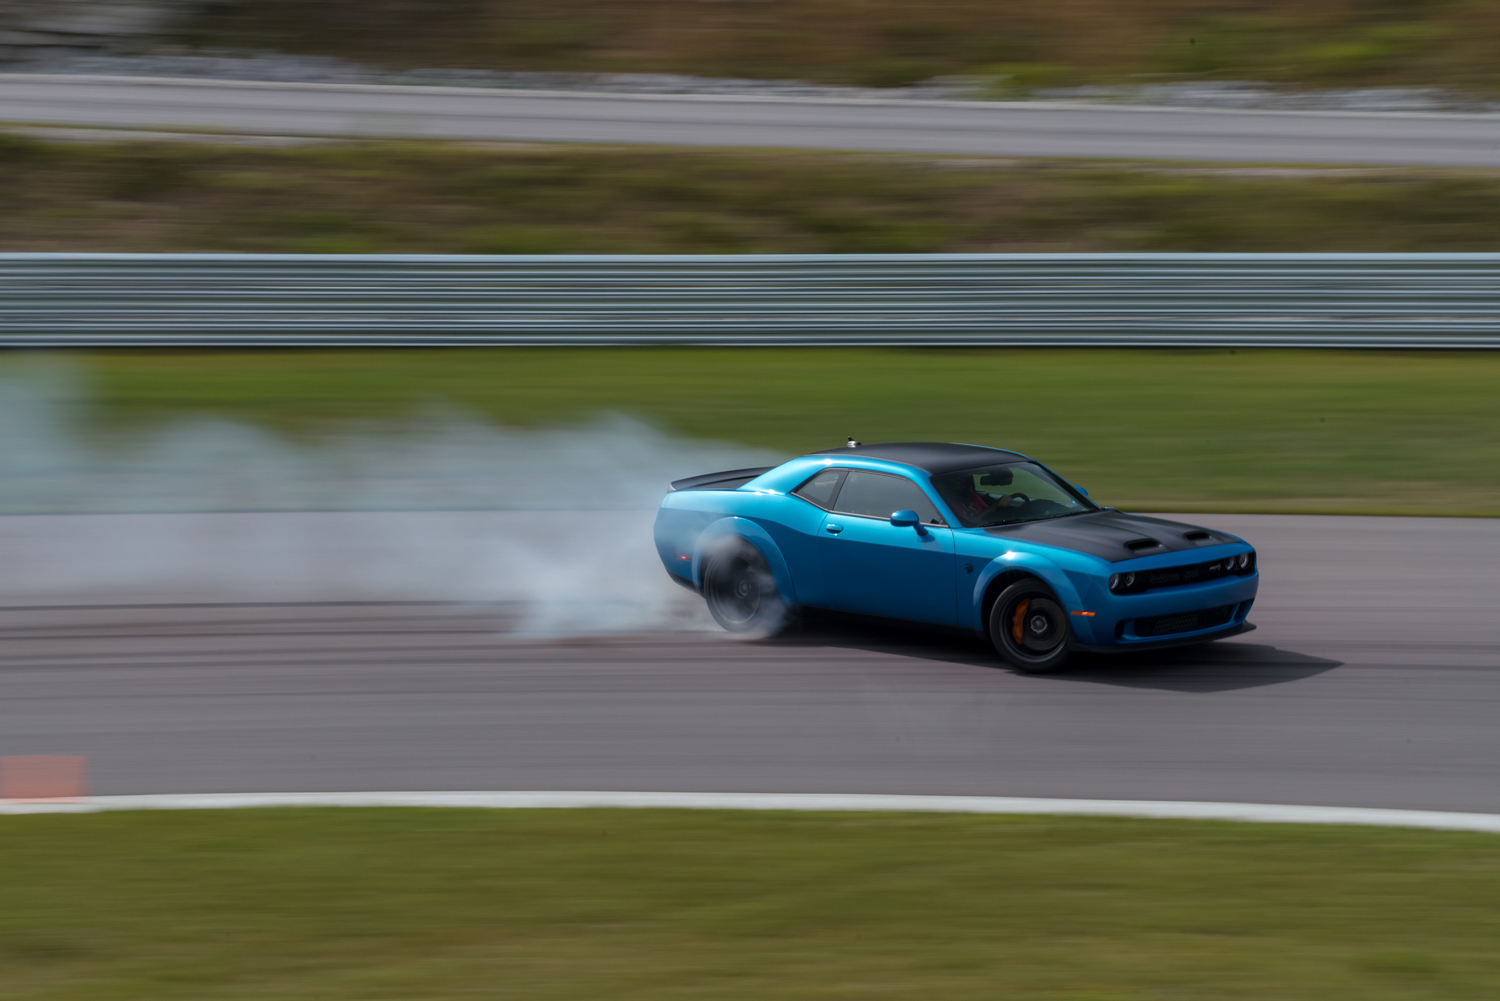 2019 Challenger SRT Hellcat Redeye Widebody drifting on track